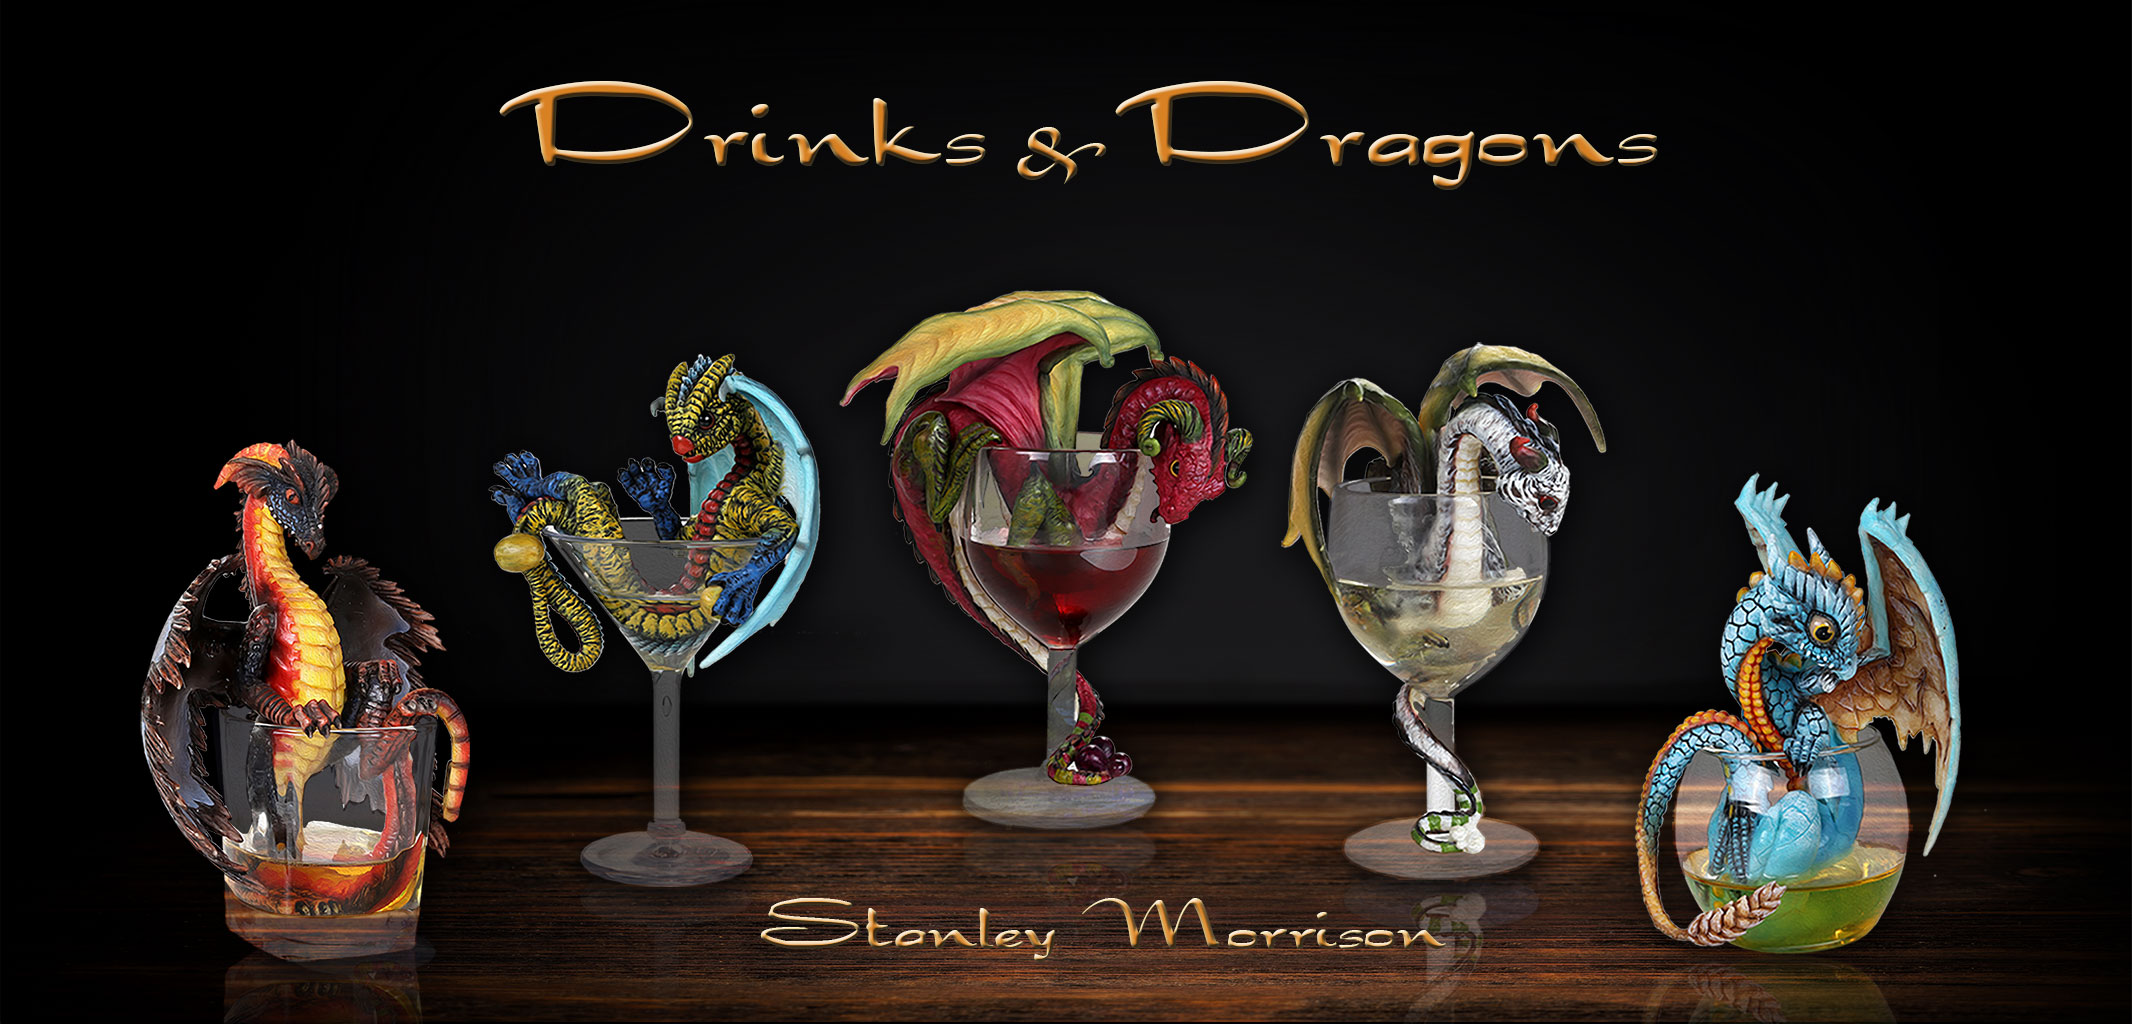 Drinks & Dragons